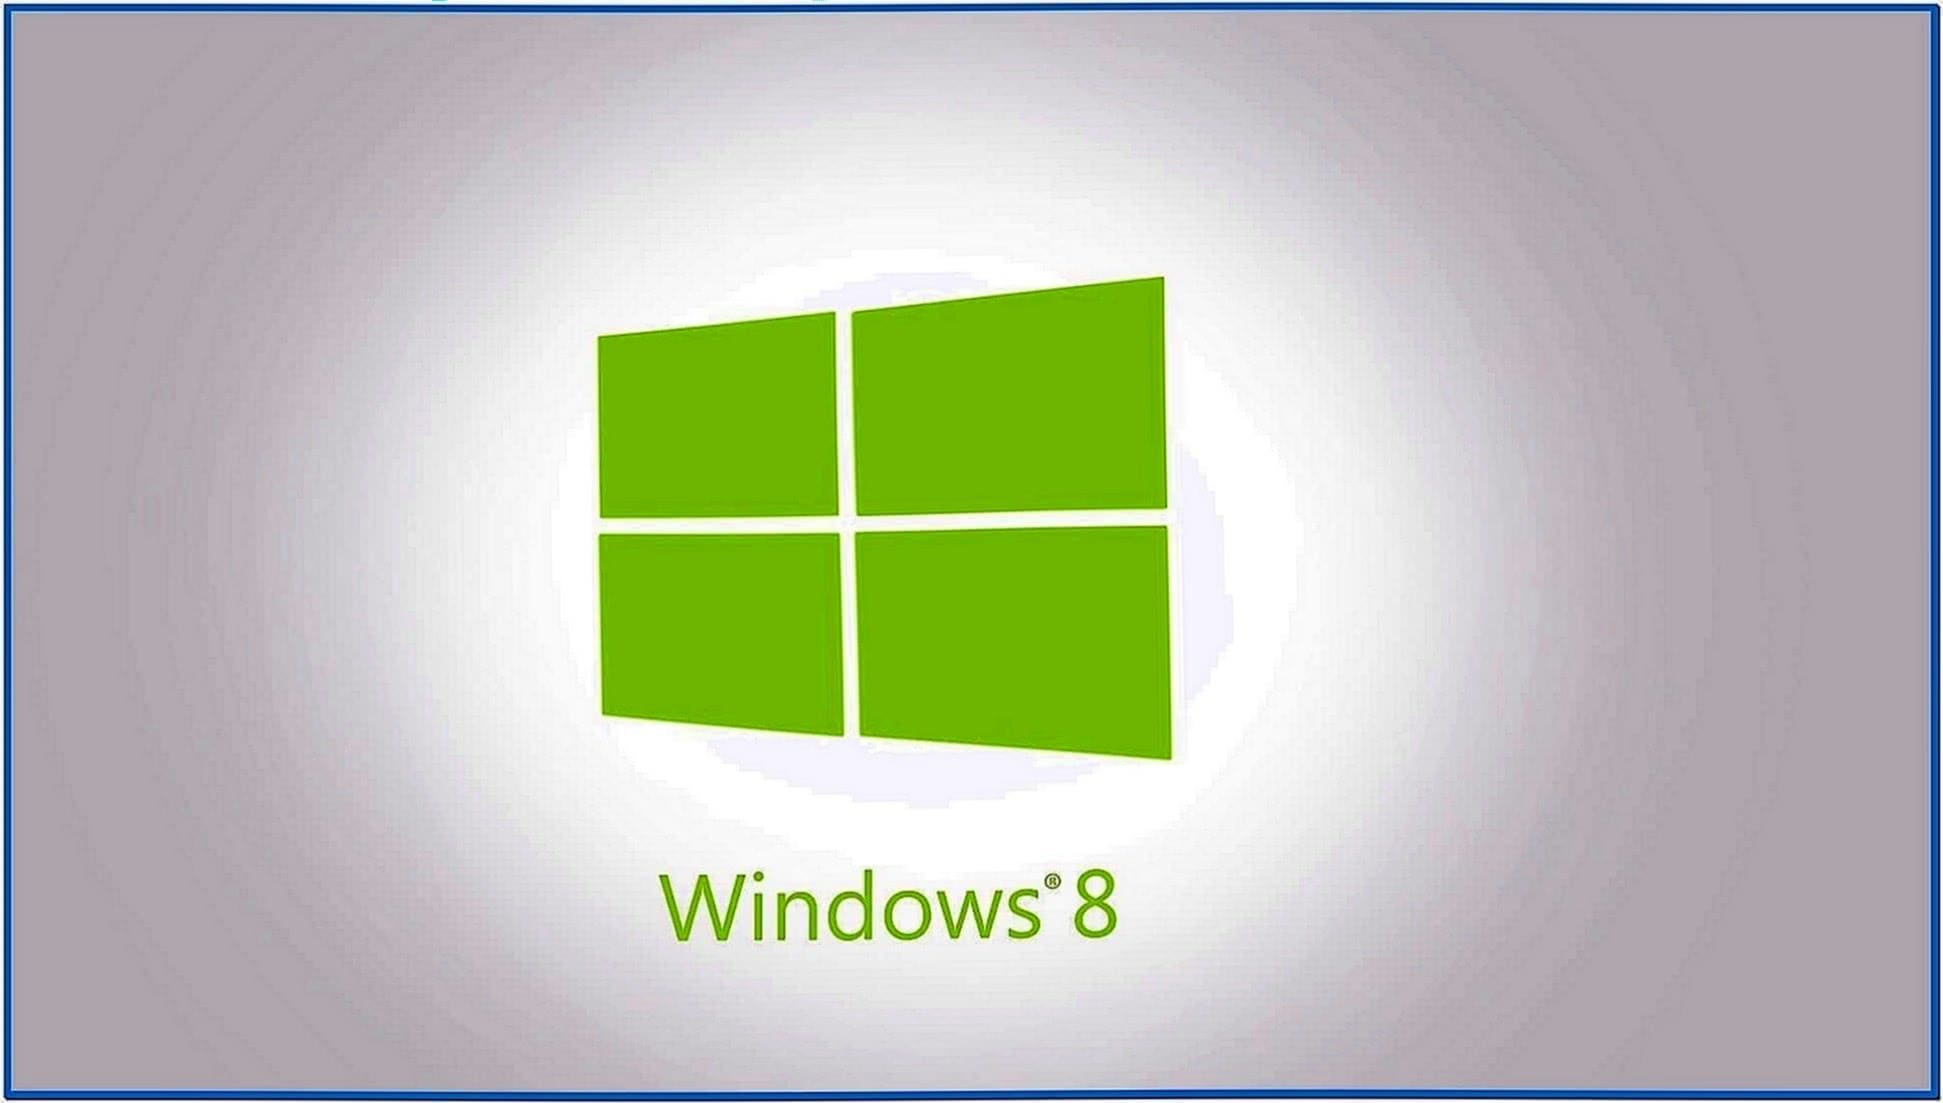 Screensaver Android Windows 8